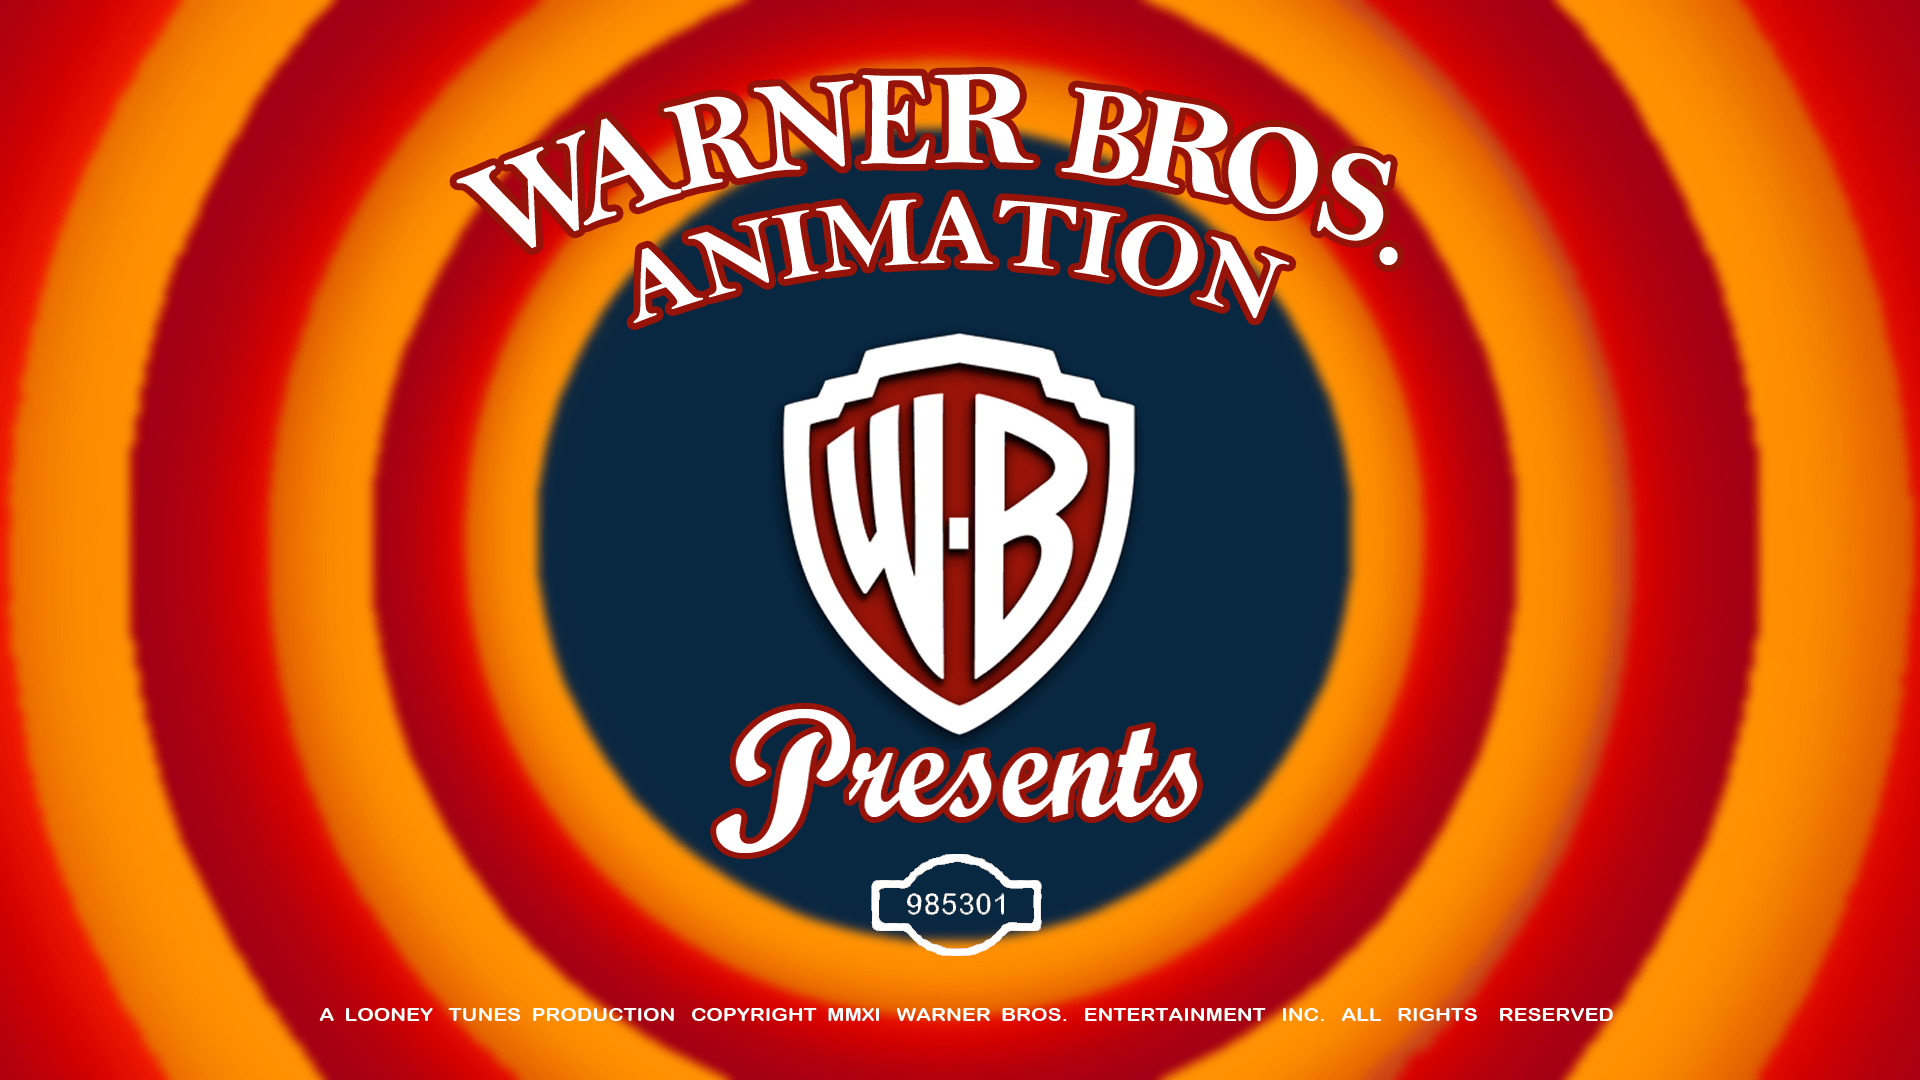 Warner Bros Wallpaper Image Group (32+)